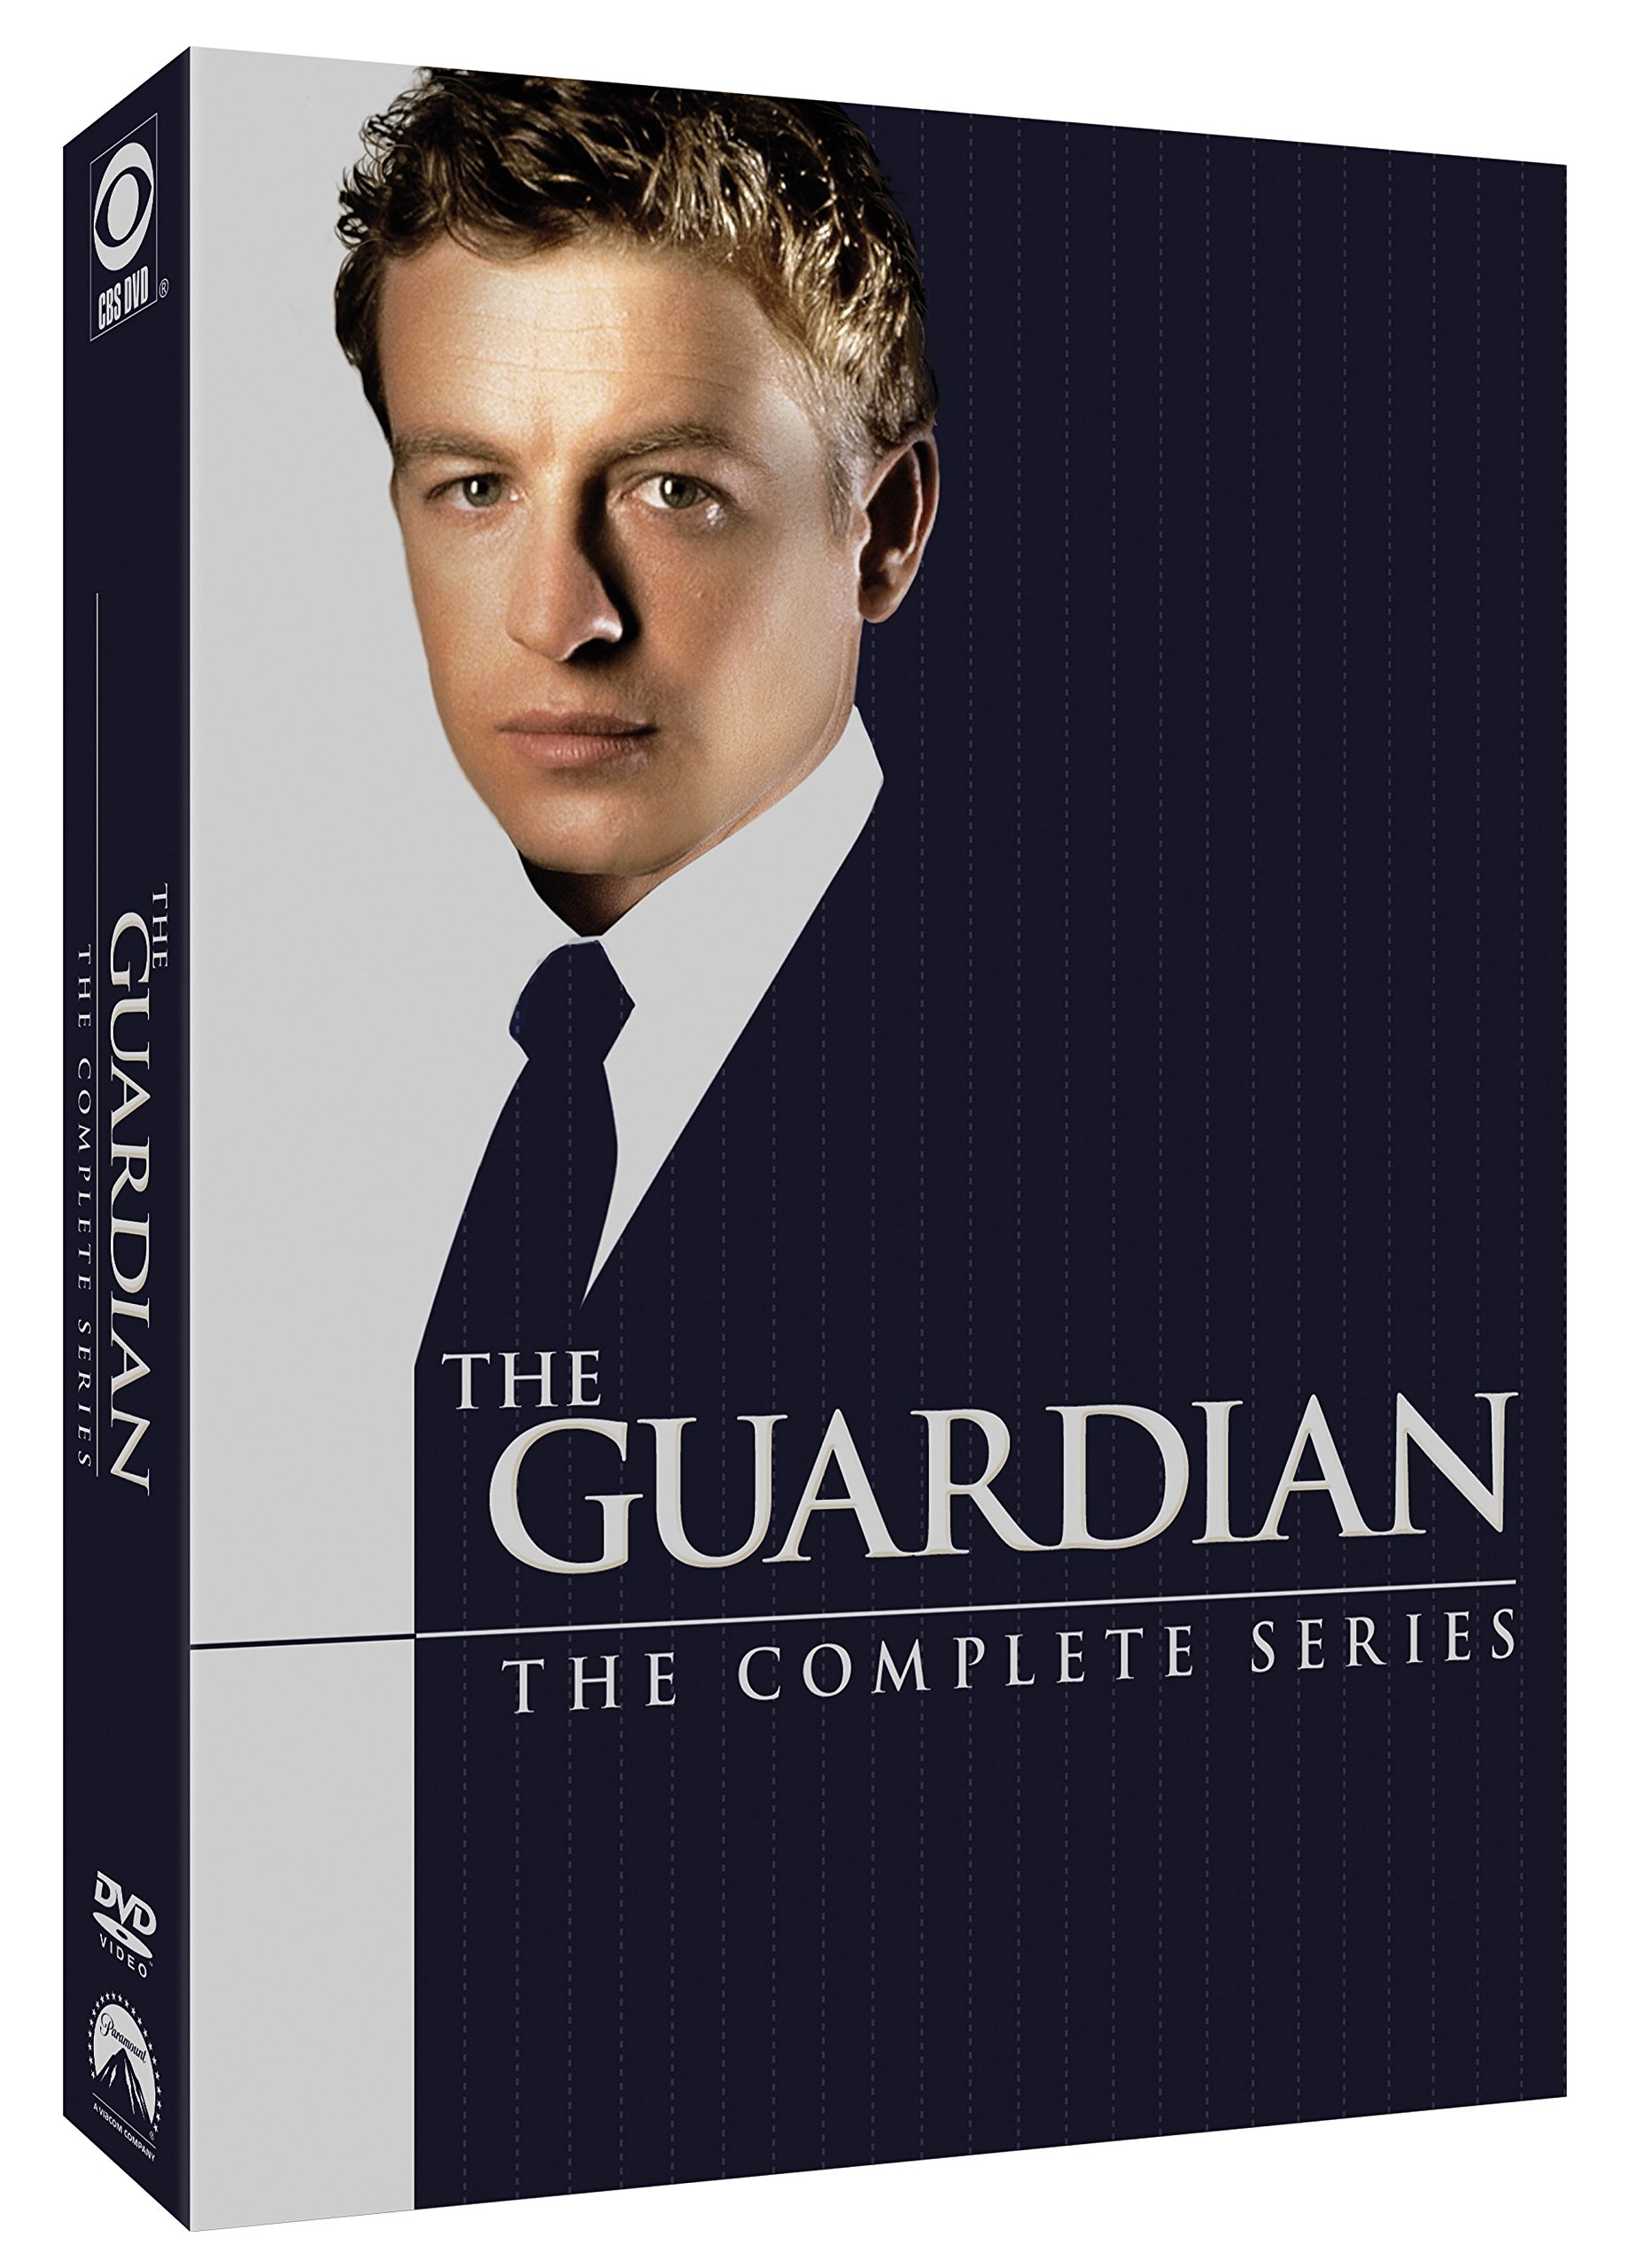 DVD : The Guardian: The Complete Series (Boxed Set, Widescreen, 18 Disc)